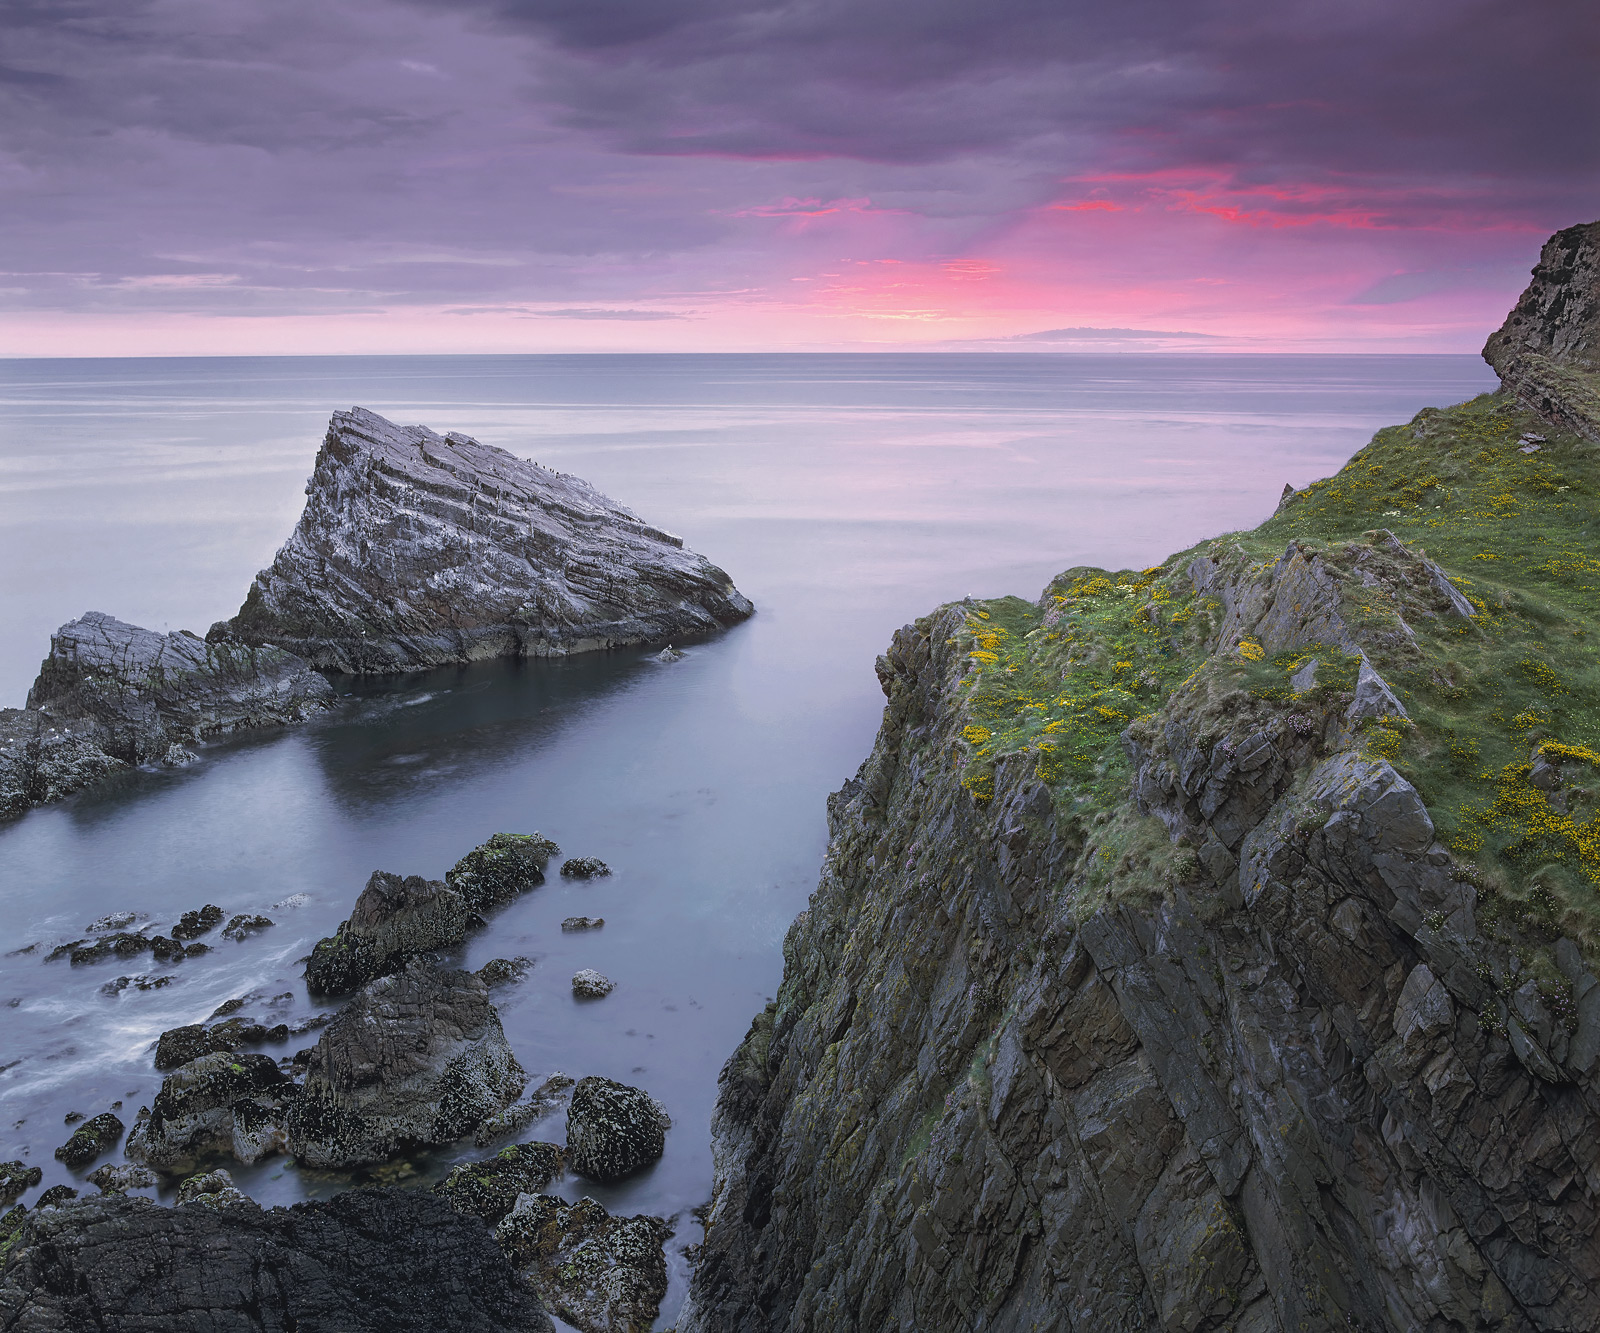 During the summer months Portknockie experiences a north facing sunrise at around 4am. I duly arrived to grey skies and...